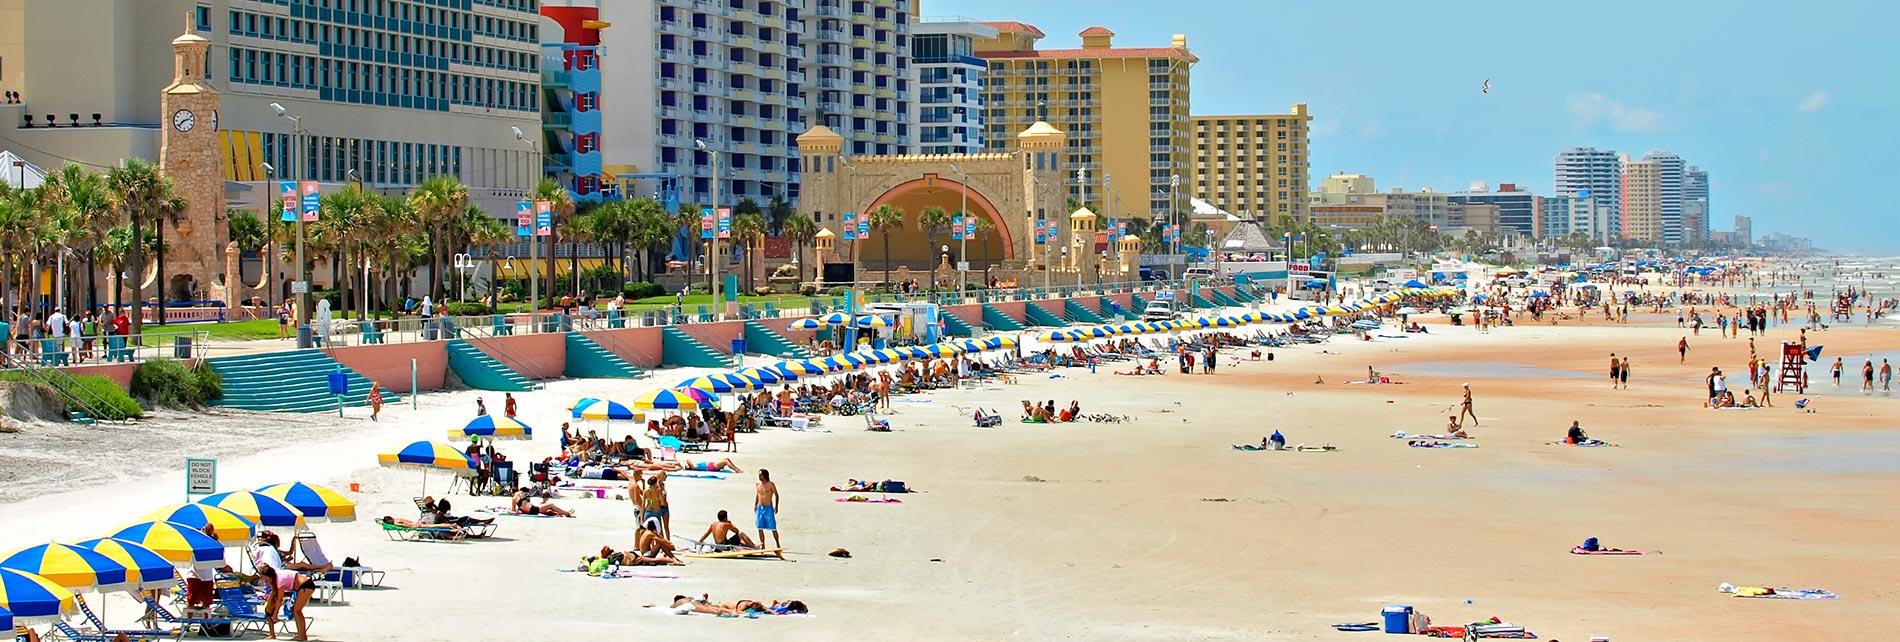 daytona beach is named 1 attraction in florida in 2017 orlando rising. Black Bedroom Furniture Sets. Home Design Ideas